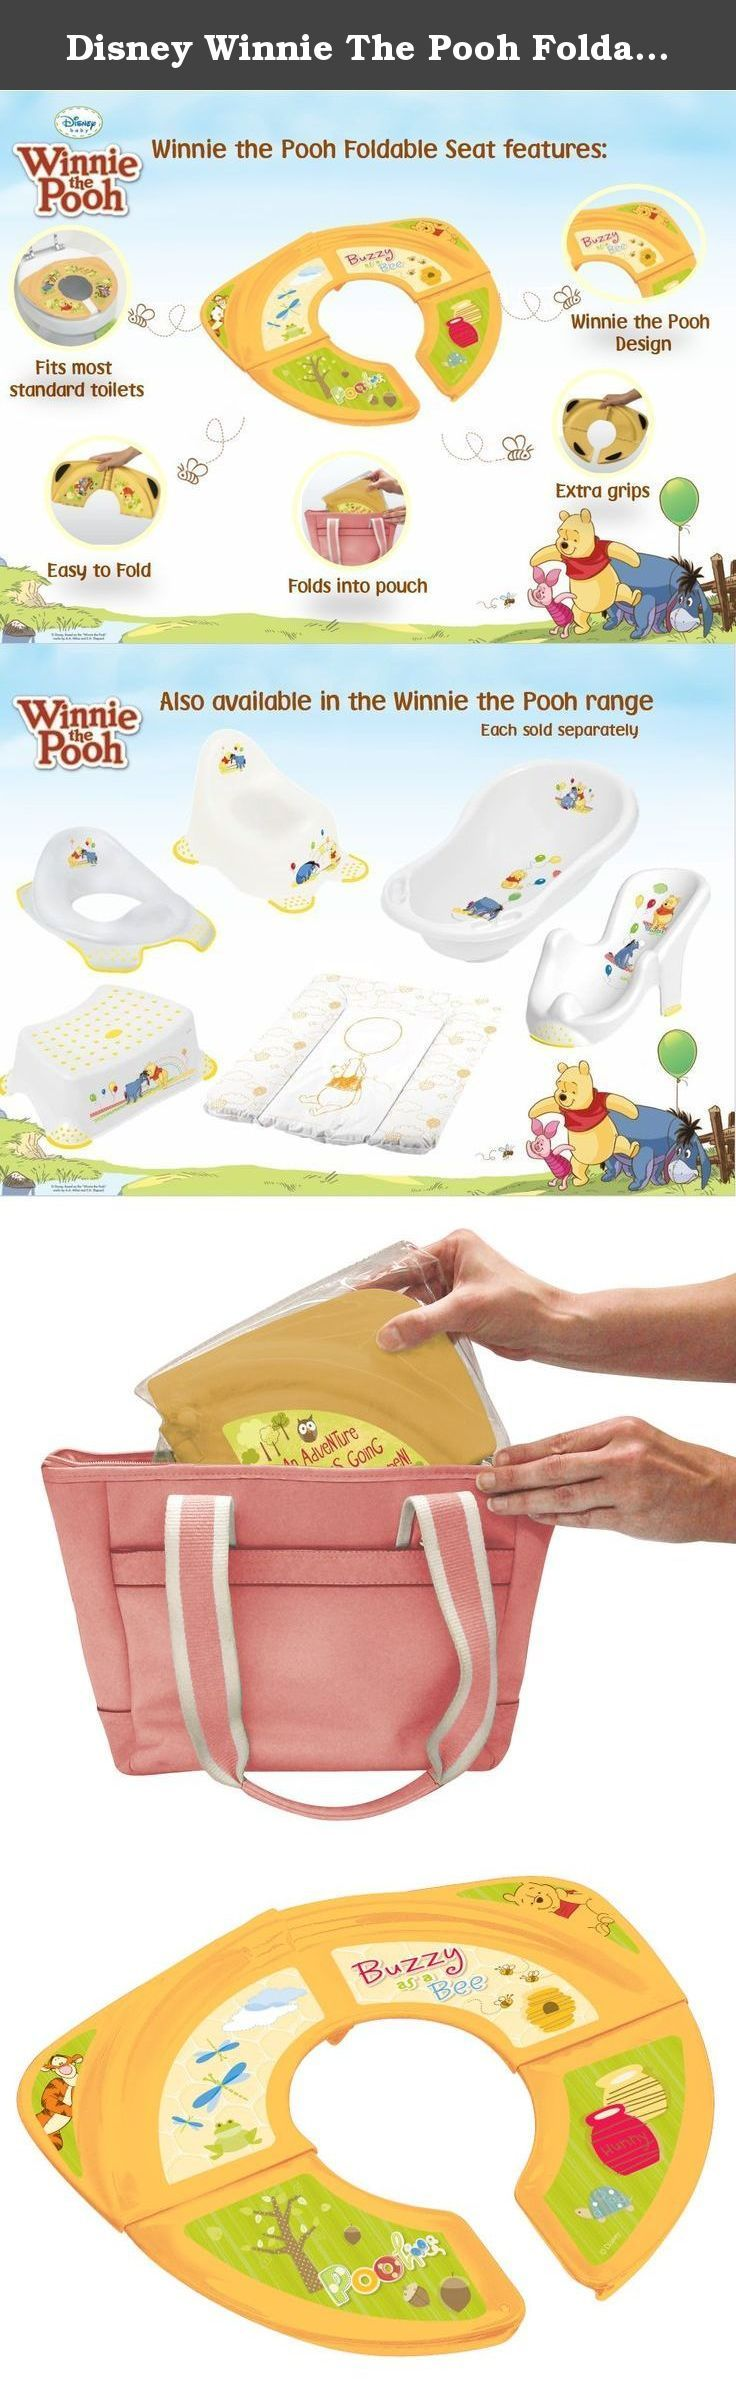 Disney Winnie The Pooh Foldable Toilet Seat. The Disney Toilet Training range has been designed so your child is comfortable and safe whilst at the same time feeling happy that they are sat with their favourite Disney character. This brightly coloured range has been proved to make a challenging experience much more fun and exciting. This seat is designed with extra non slip pads to prevent the seat slipping or tipping. The lightweight plastic material makes it very practical to take the…